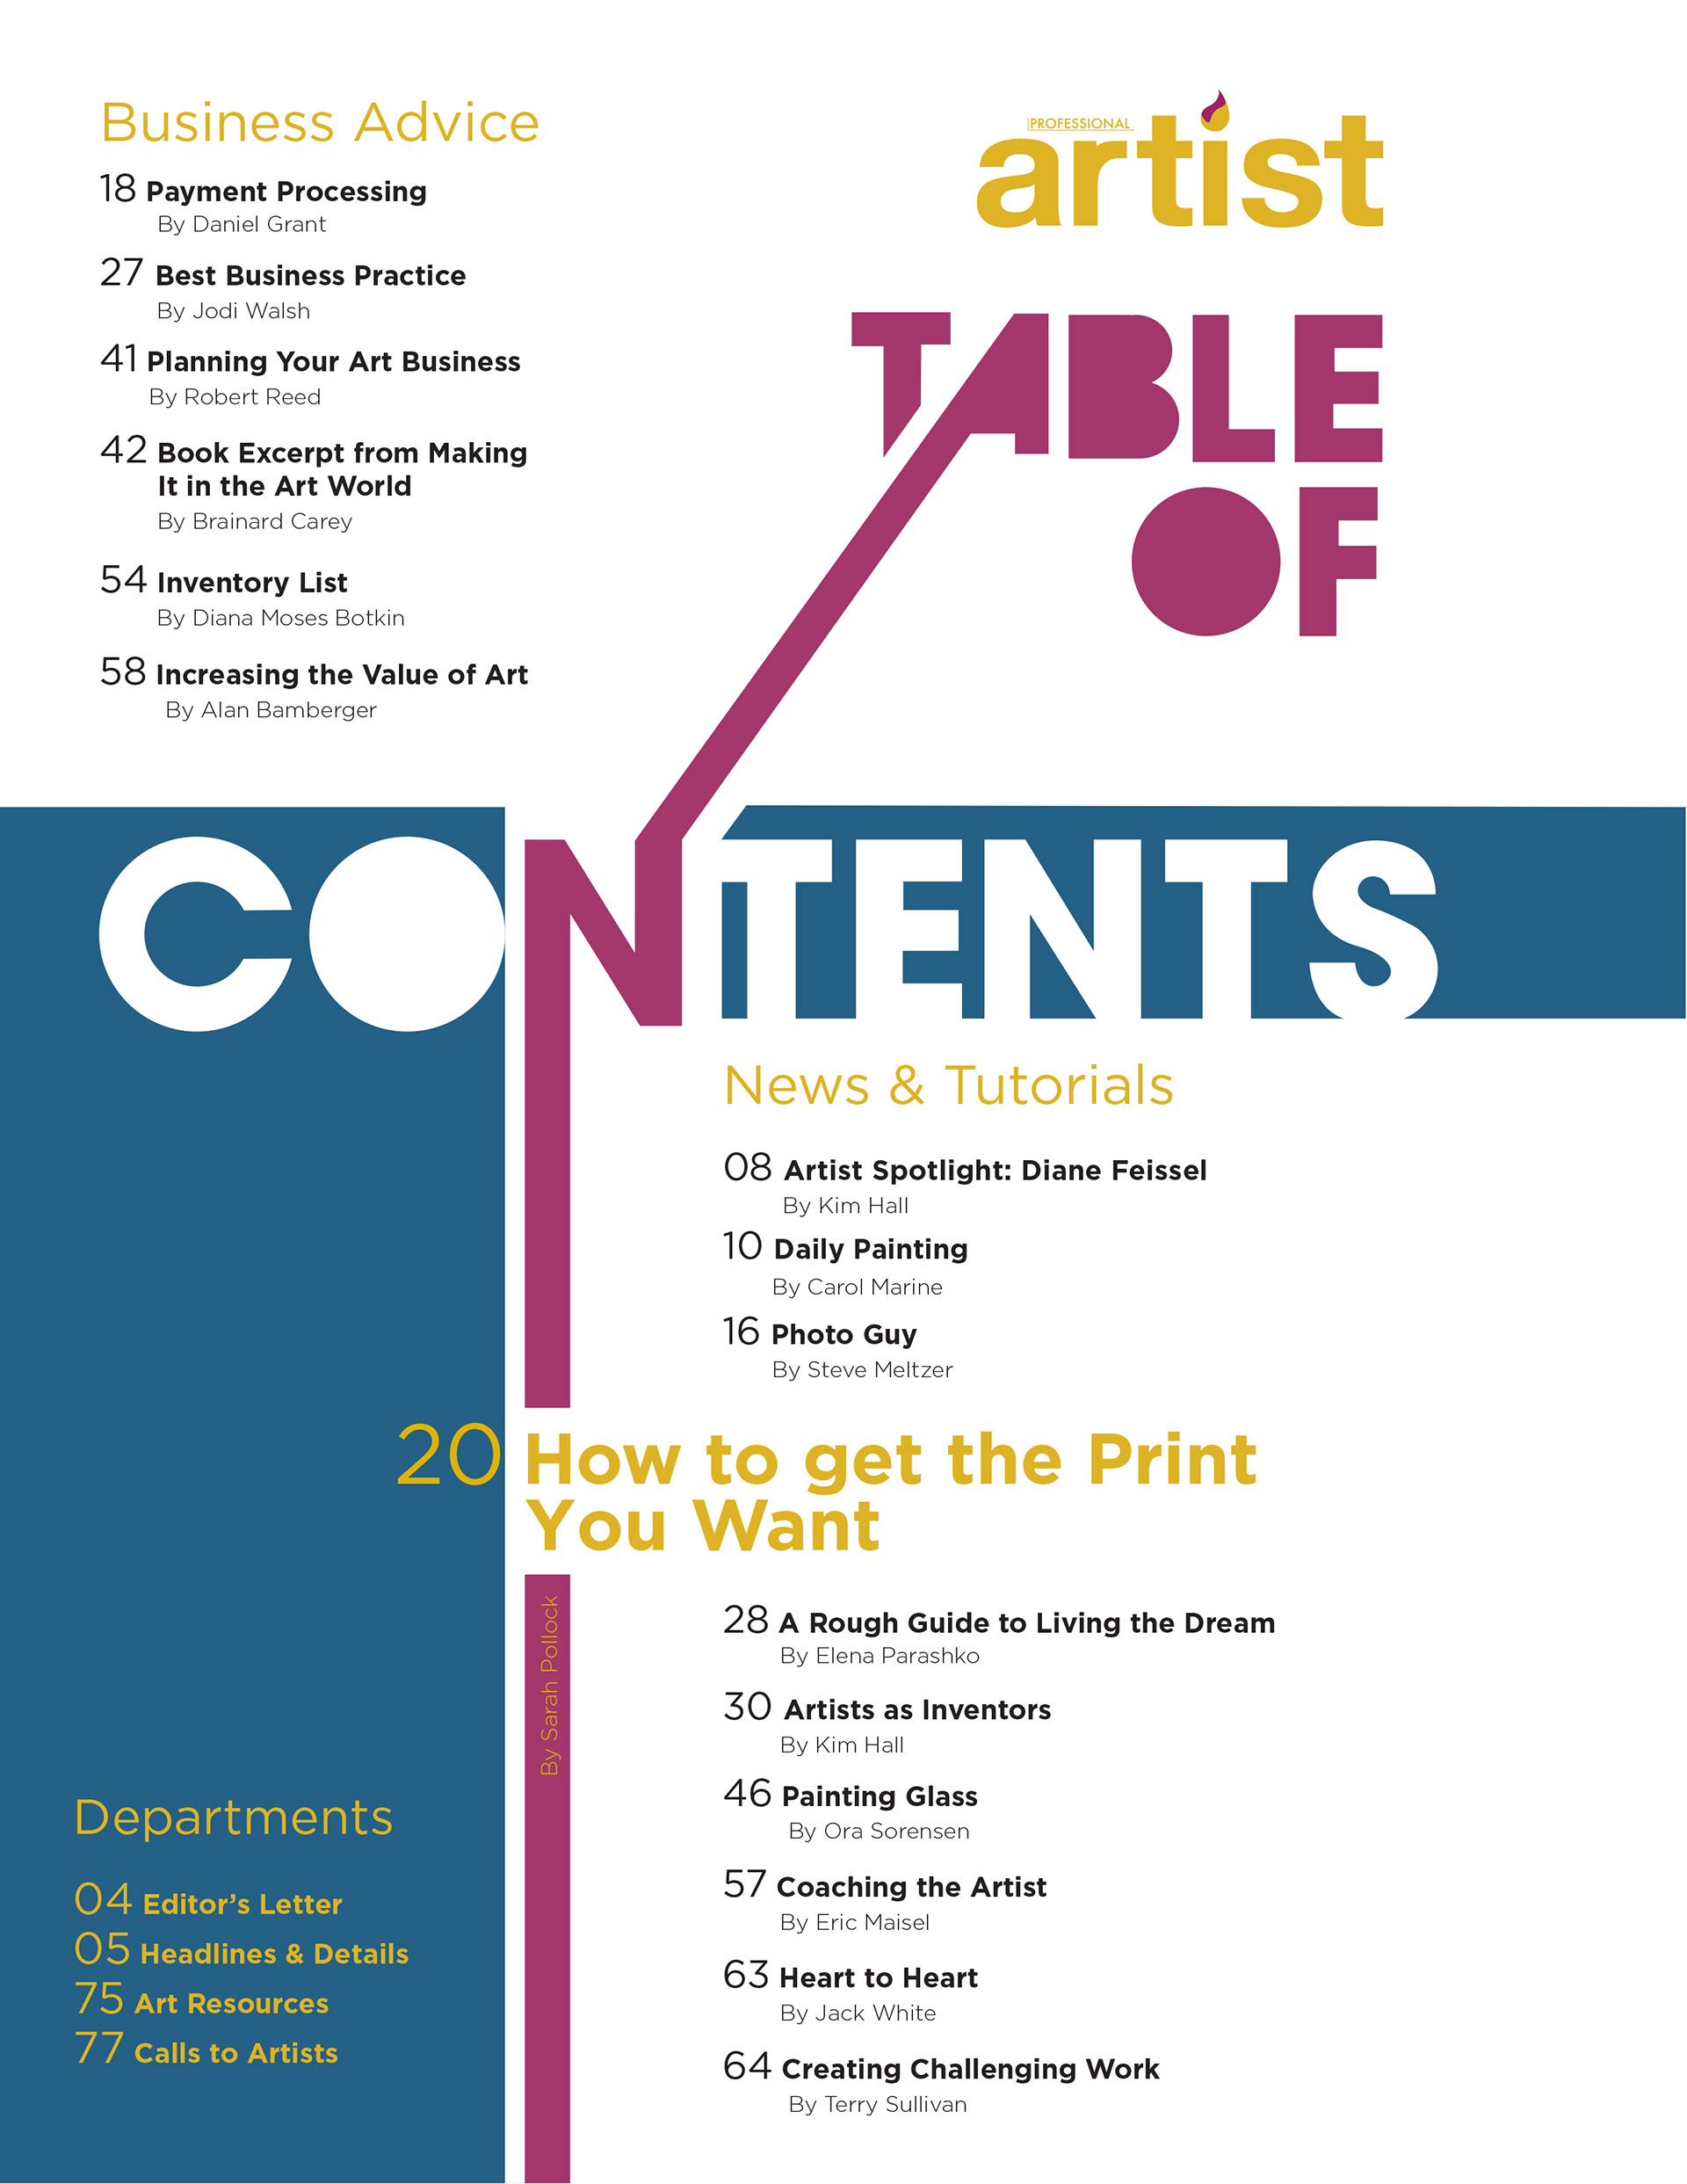 Sarah Bales Redesign Magazine Editorialcovertable Of Contents